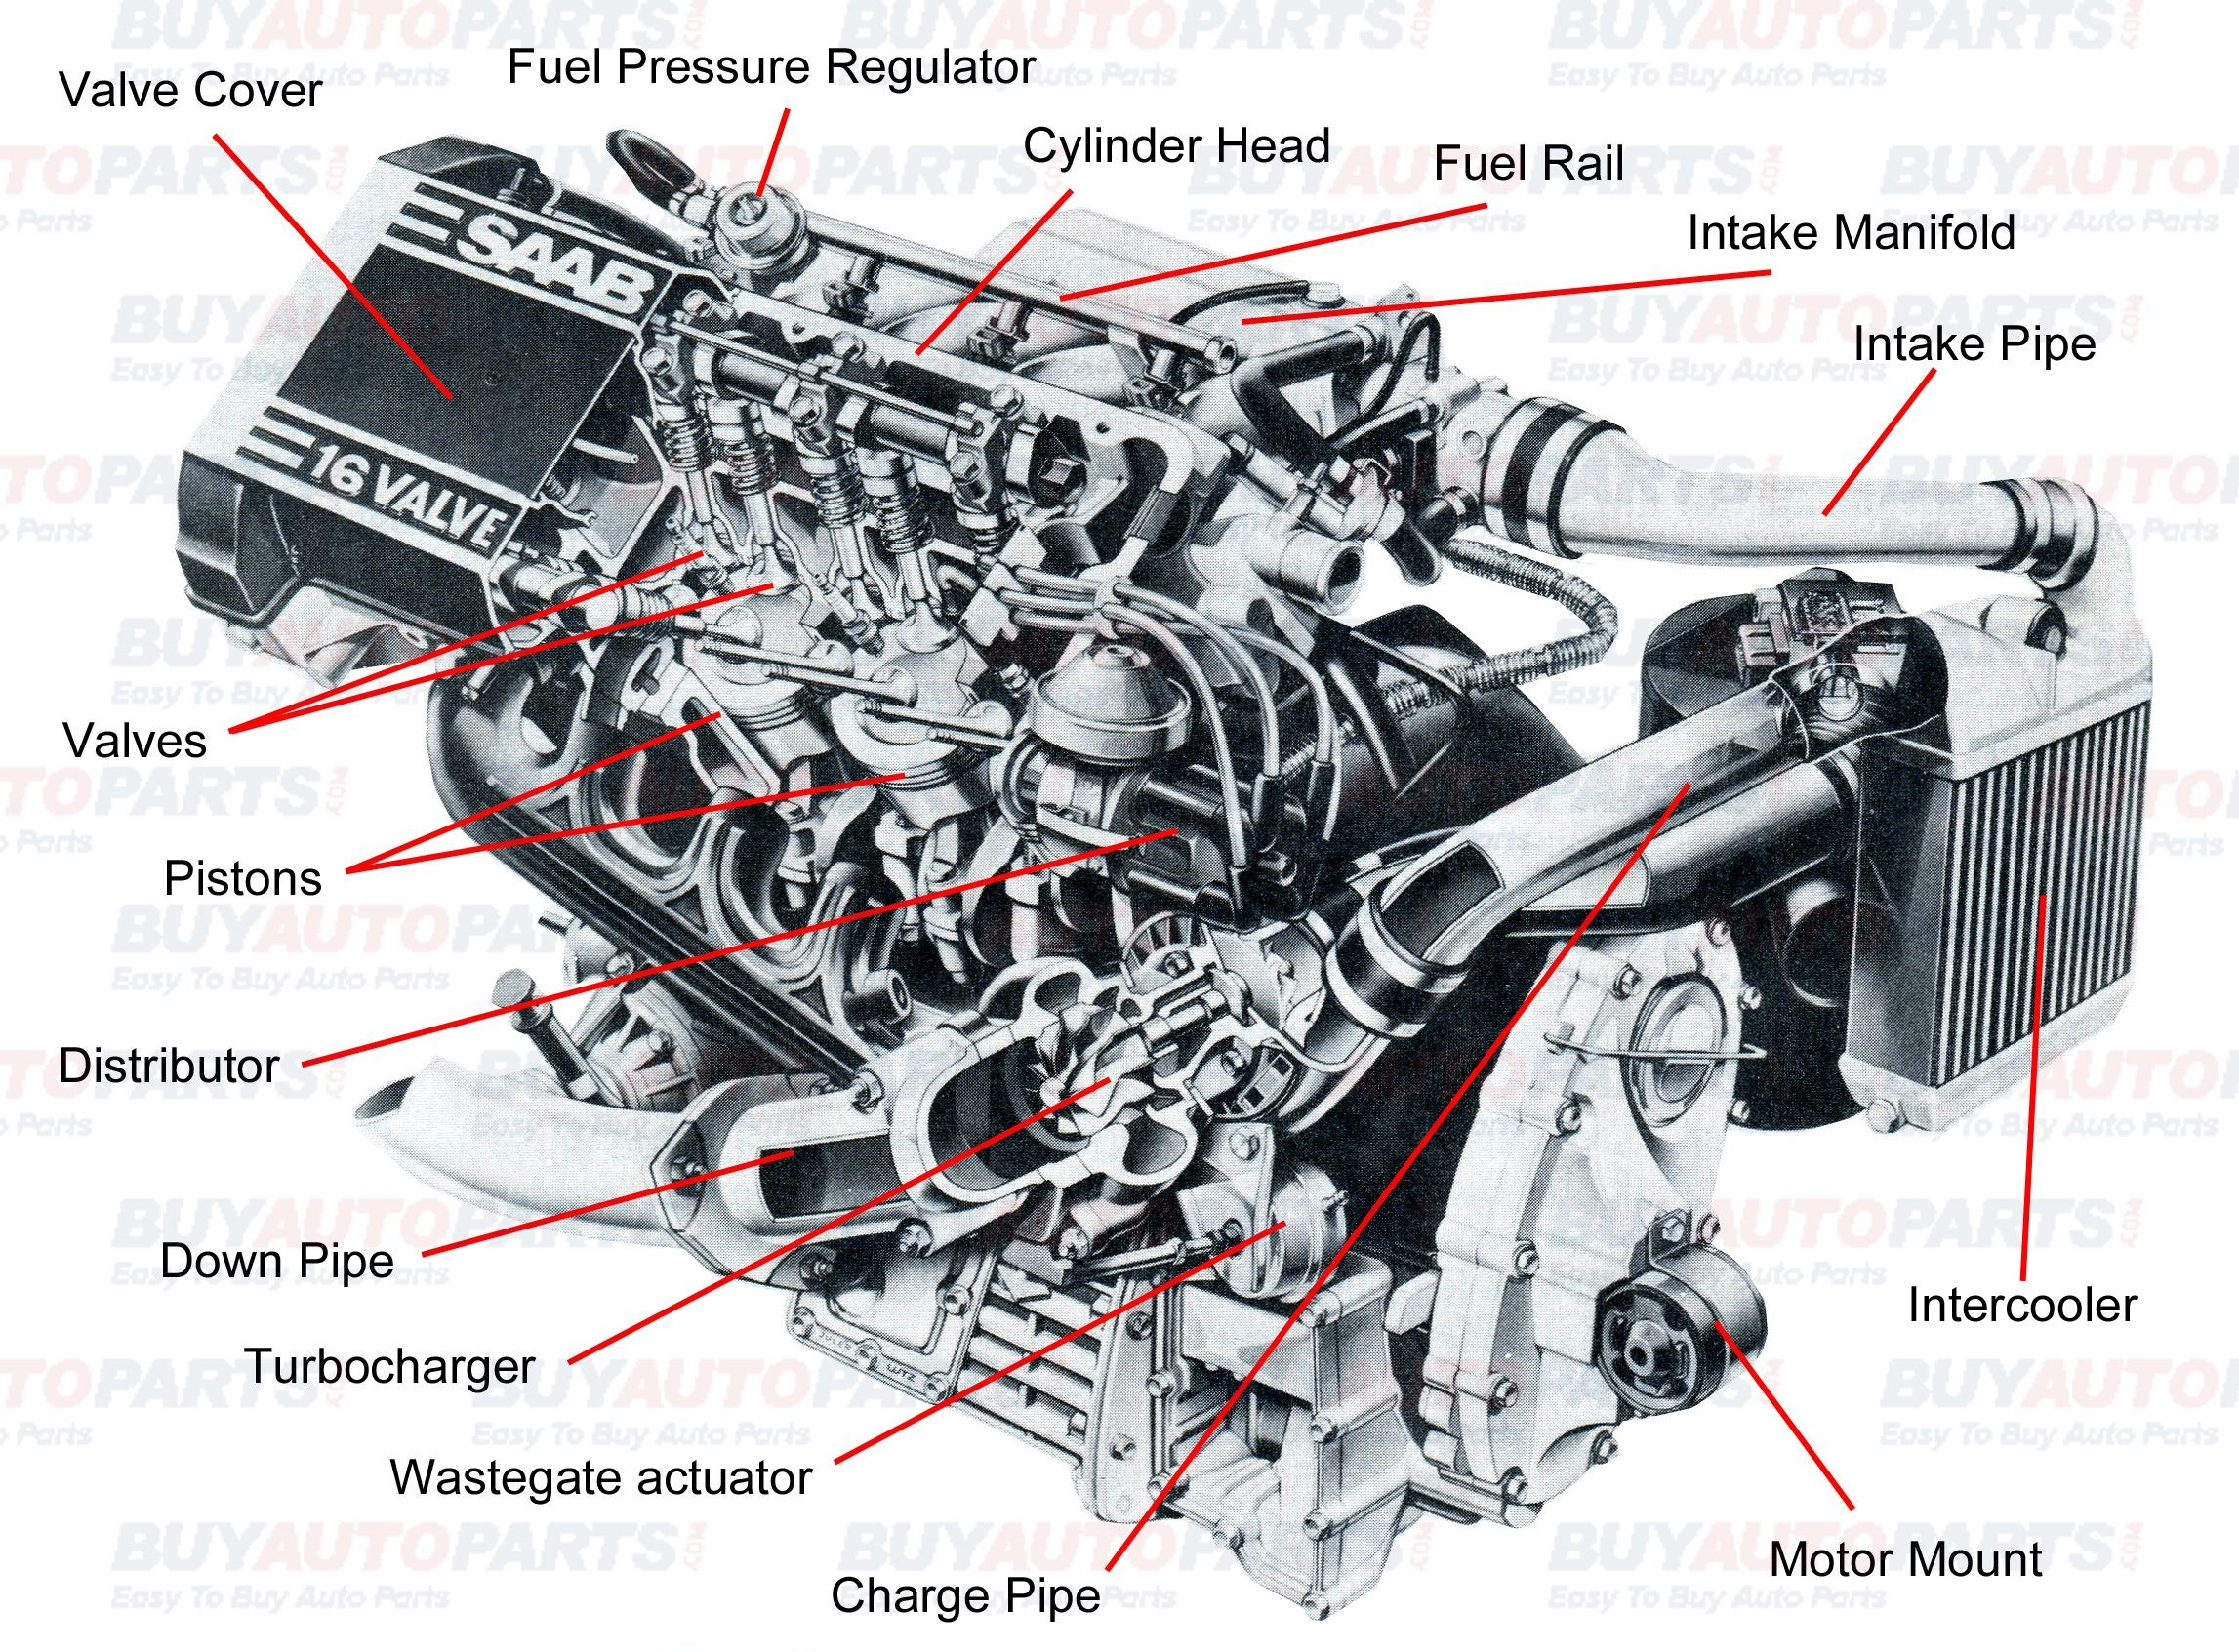 External Combustion Engine Diagram Pin by Jimmiejanet Testellamwfz On What Does An Engine with Turbo Of External Combustion Engine Diagram